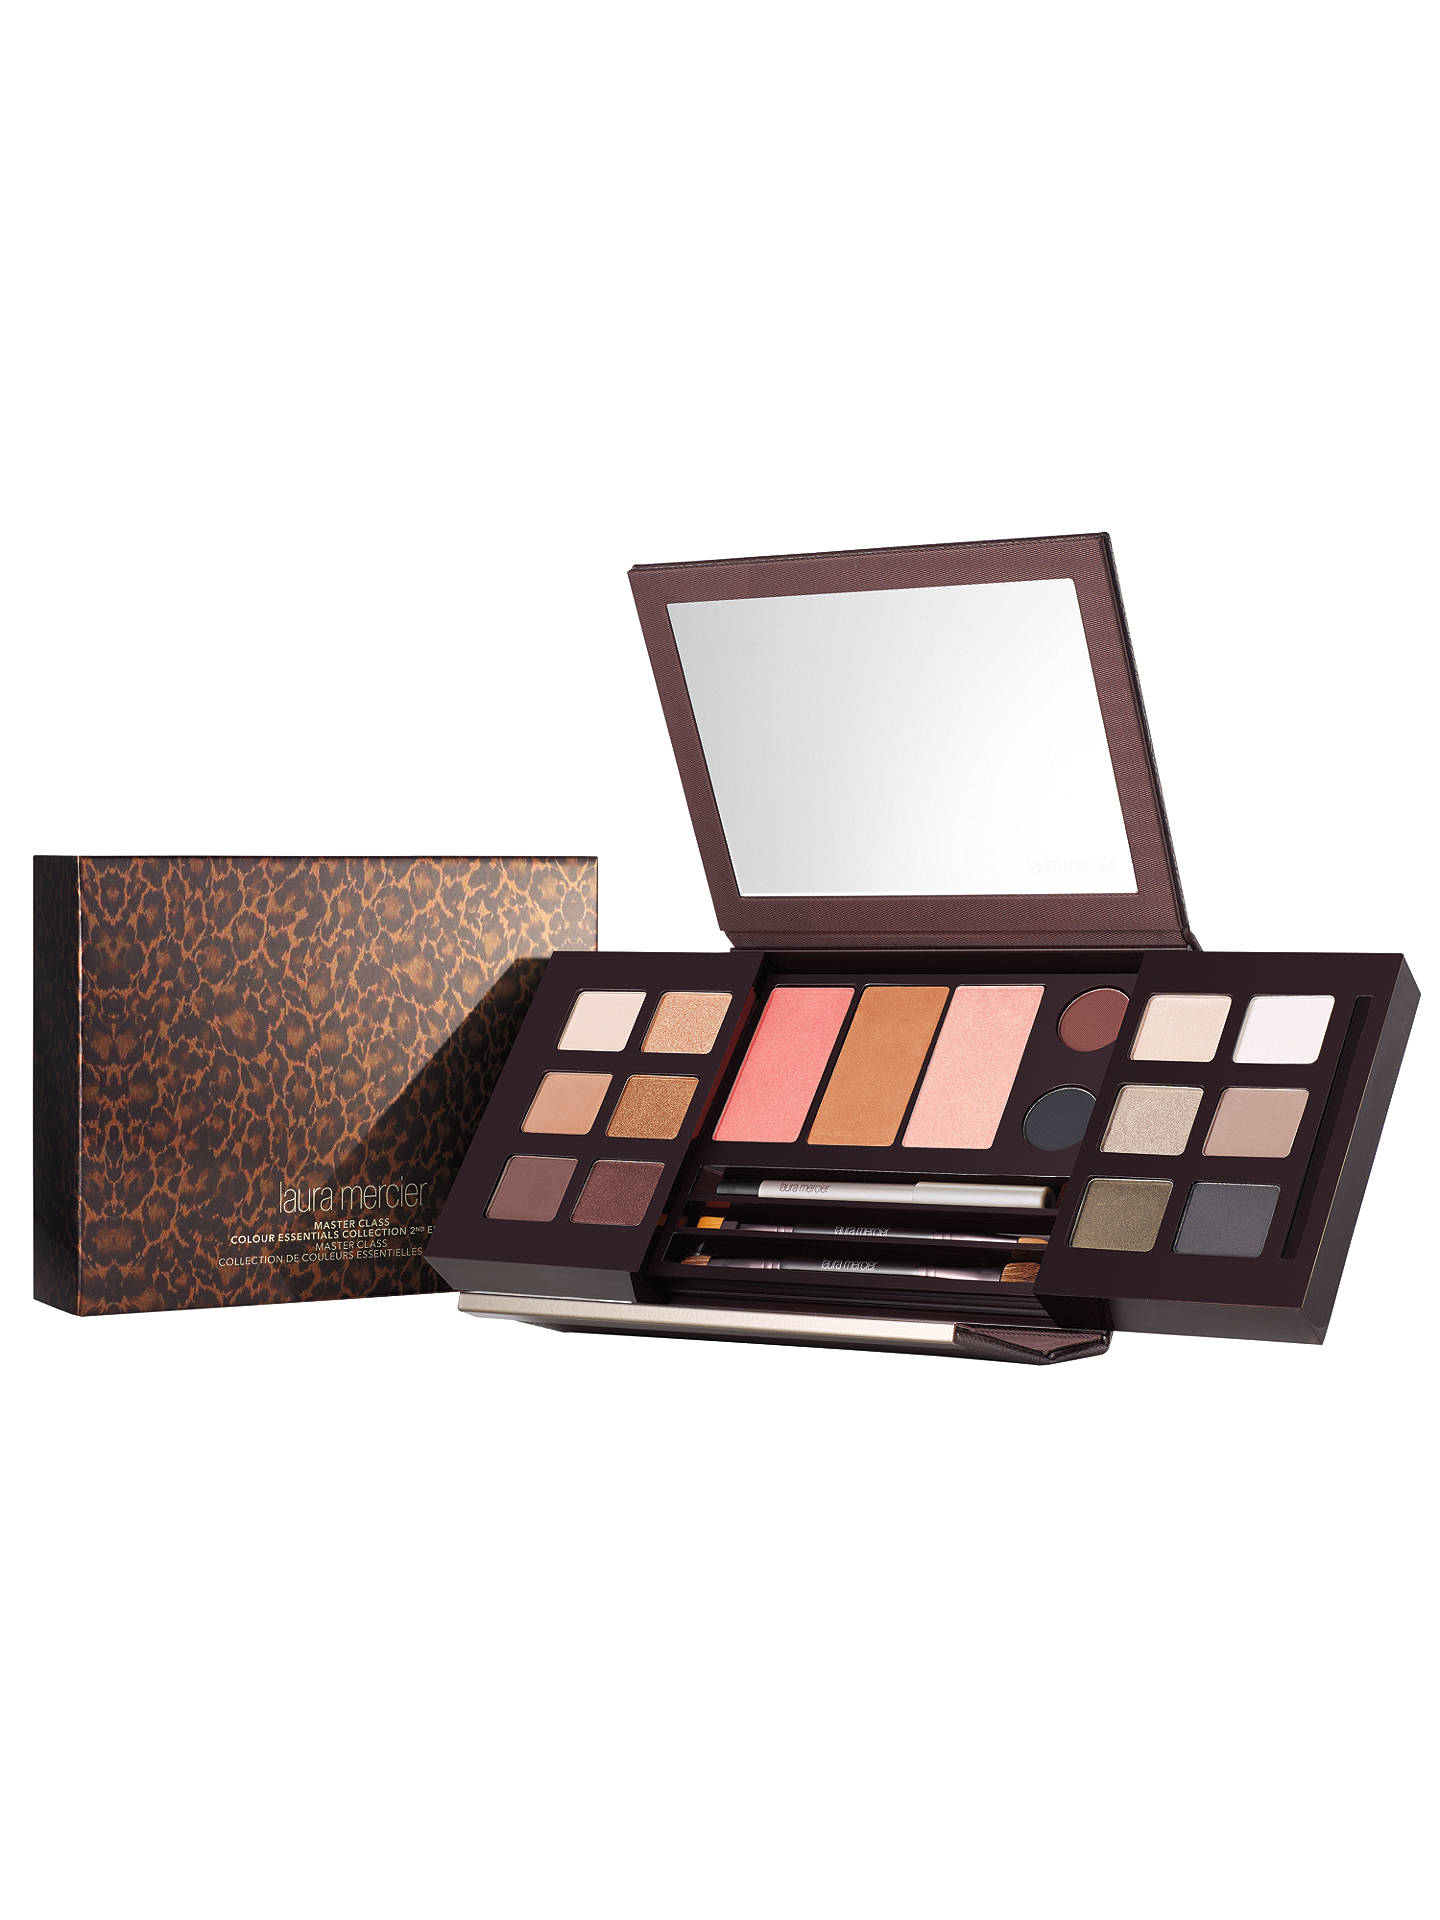 Buy Laura Mercier Master Class Colour Essentials Collection 2nd Edition Online at johnlewis.com